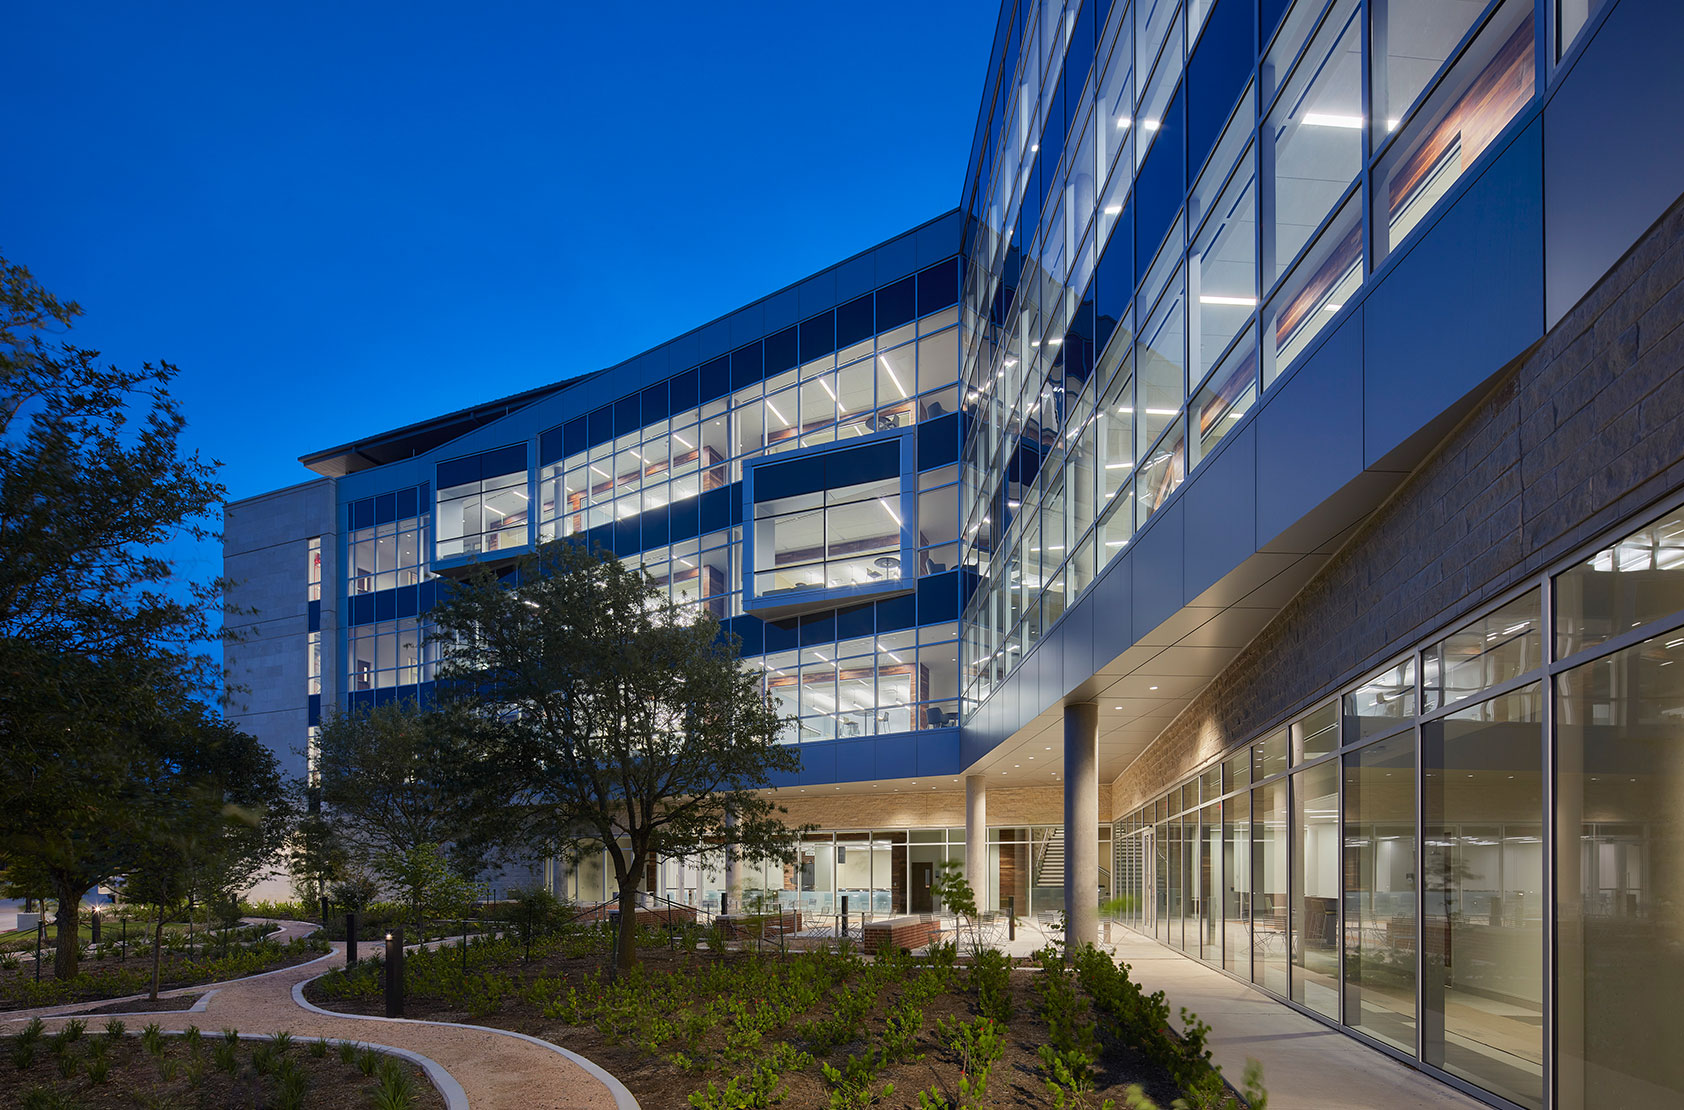 Texas A&M - Health Science Center Medical Research and Education Building 2